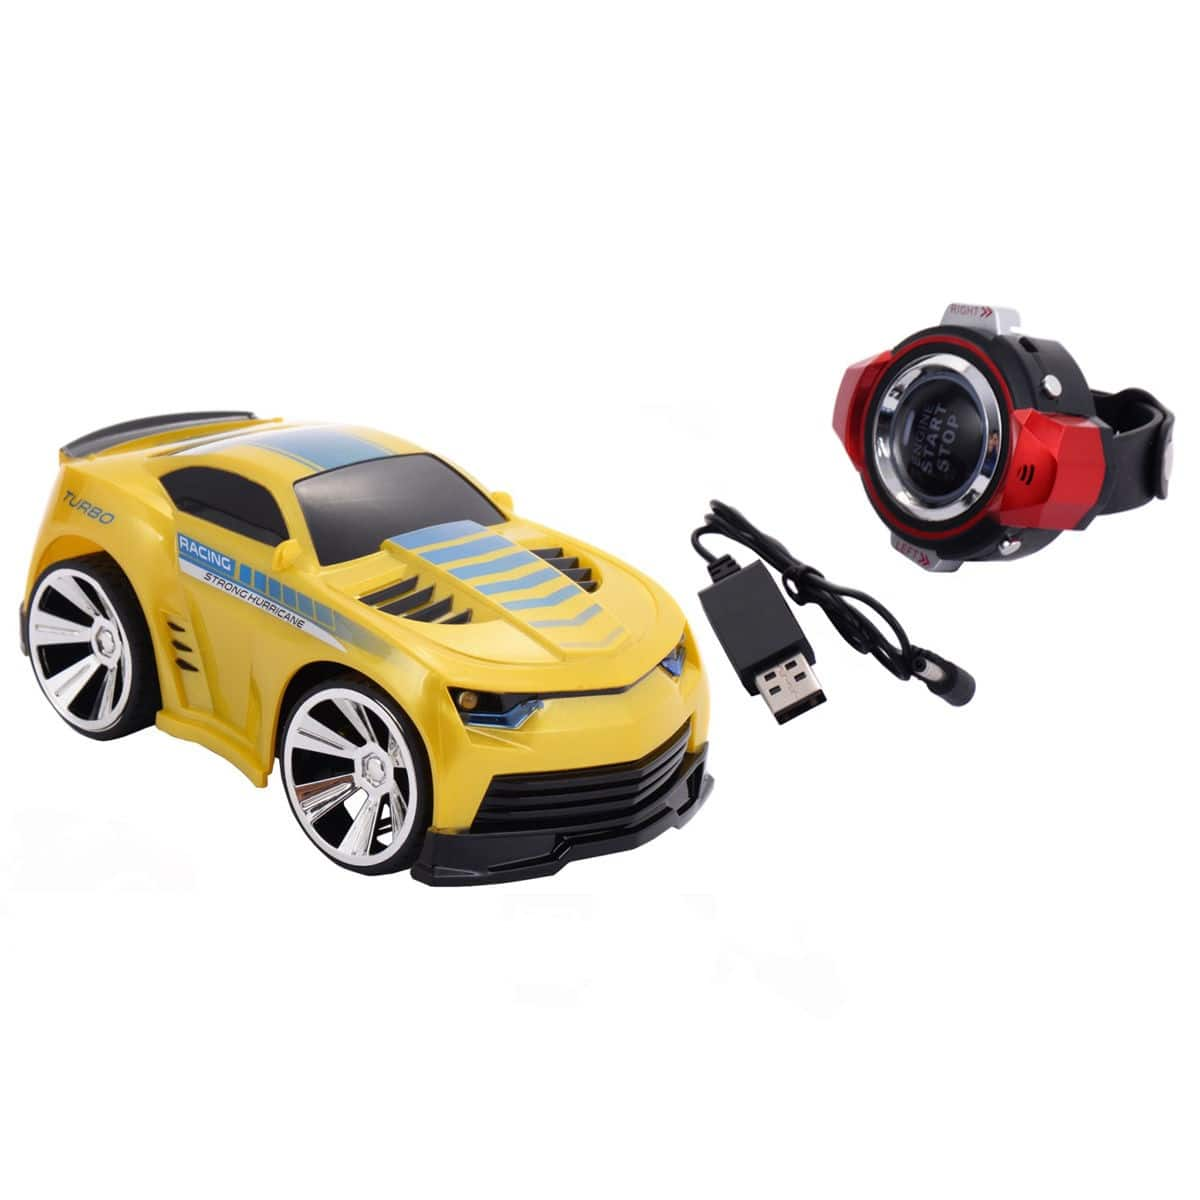 Costway 2.4G Voice Command Remote Control Car $11.95 + Free Shipping